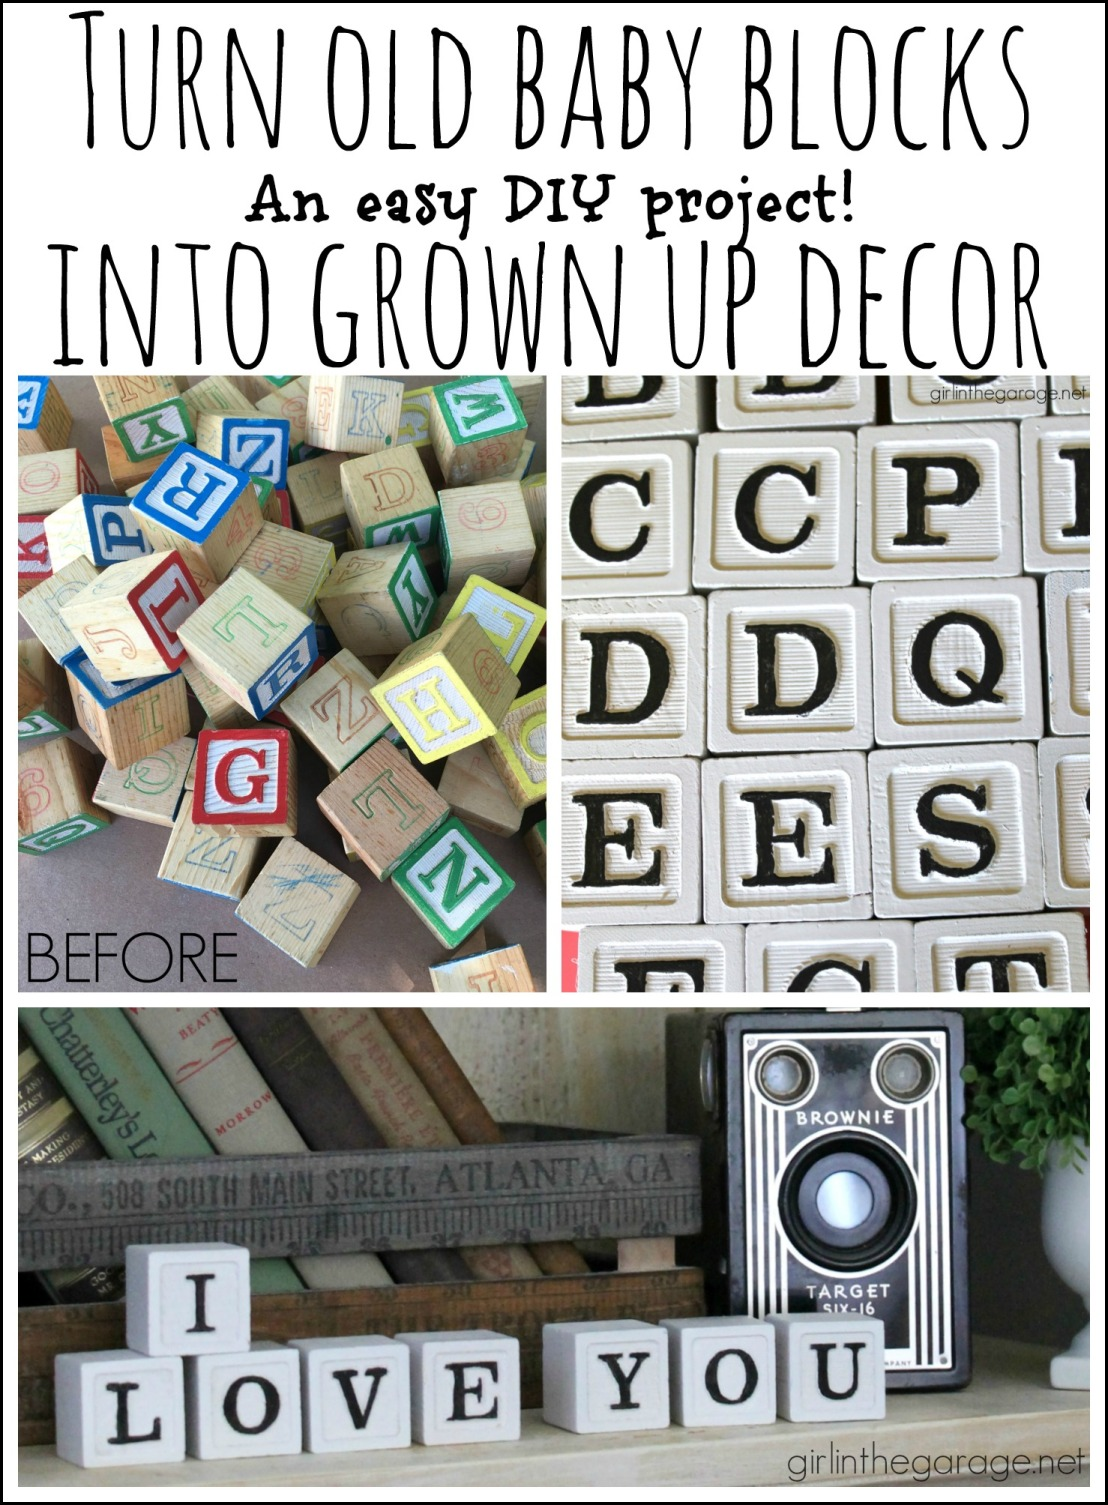 upcycled-alphabet-baby-blocks-to-decor.jpg